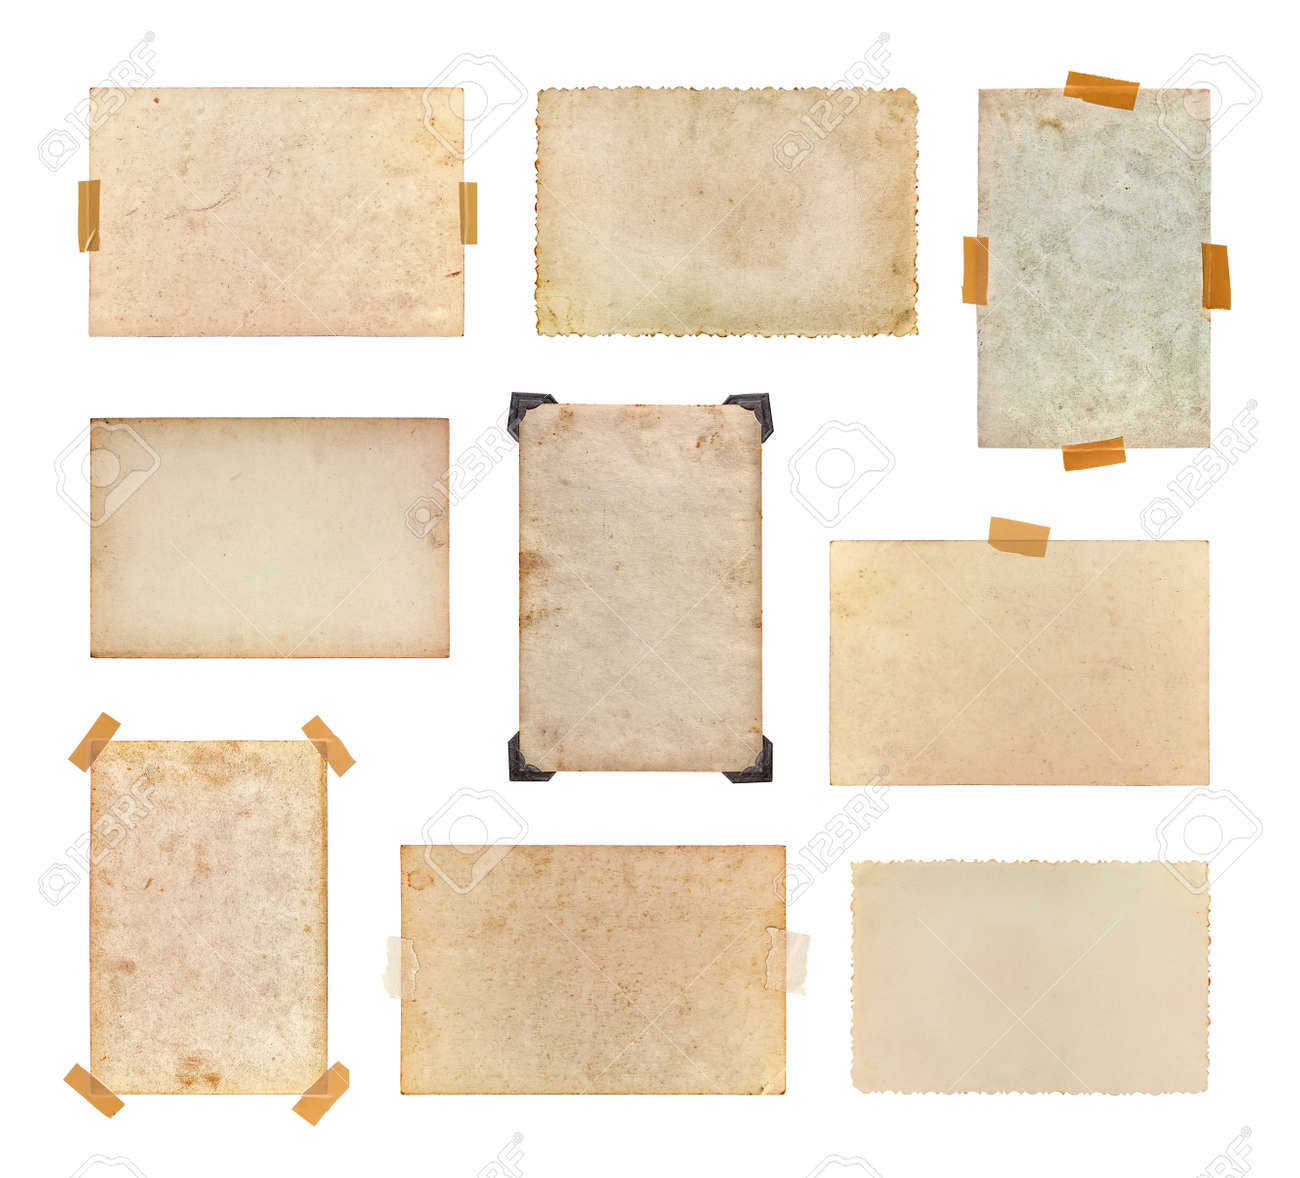 Set of vintage photos isolated on a white background. Collection of old photos, each one is shot separately. - 166310285